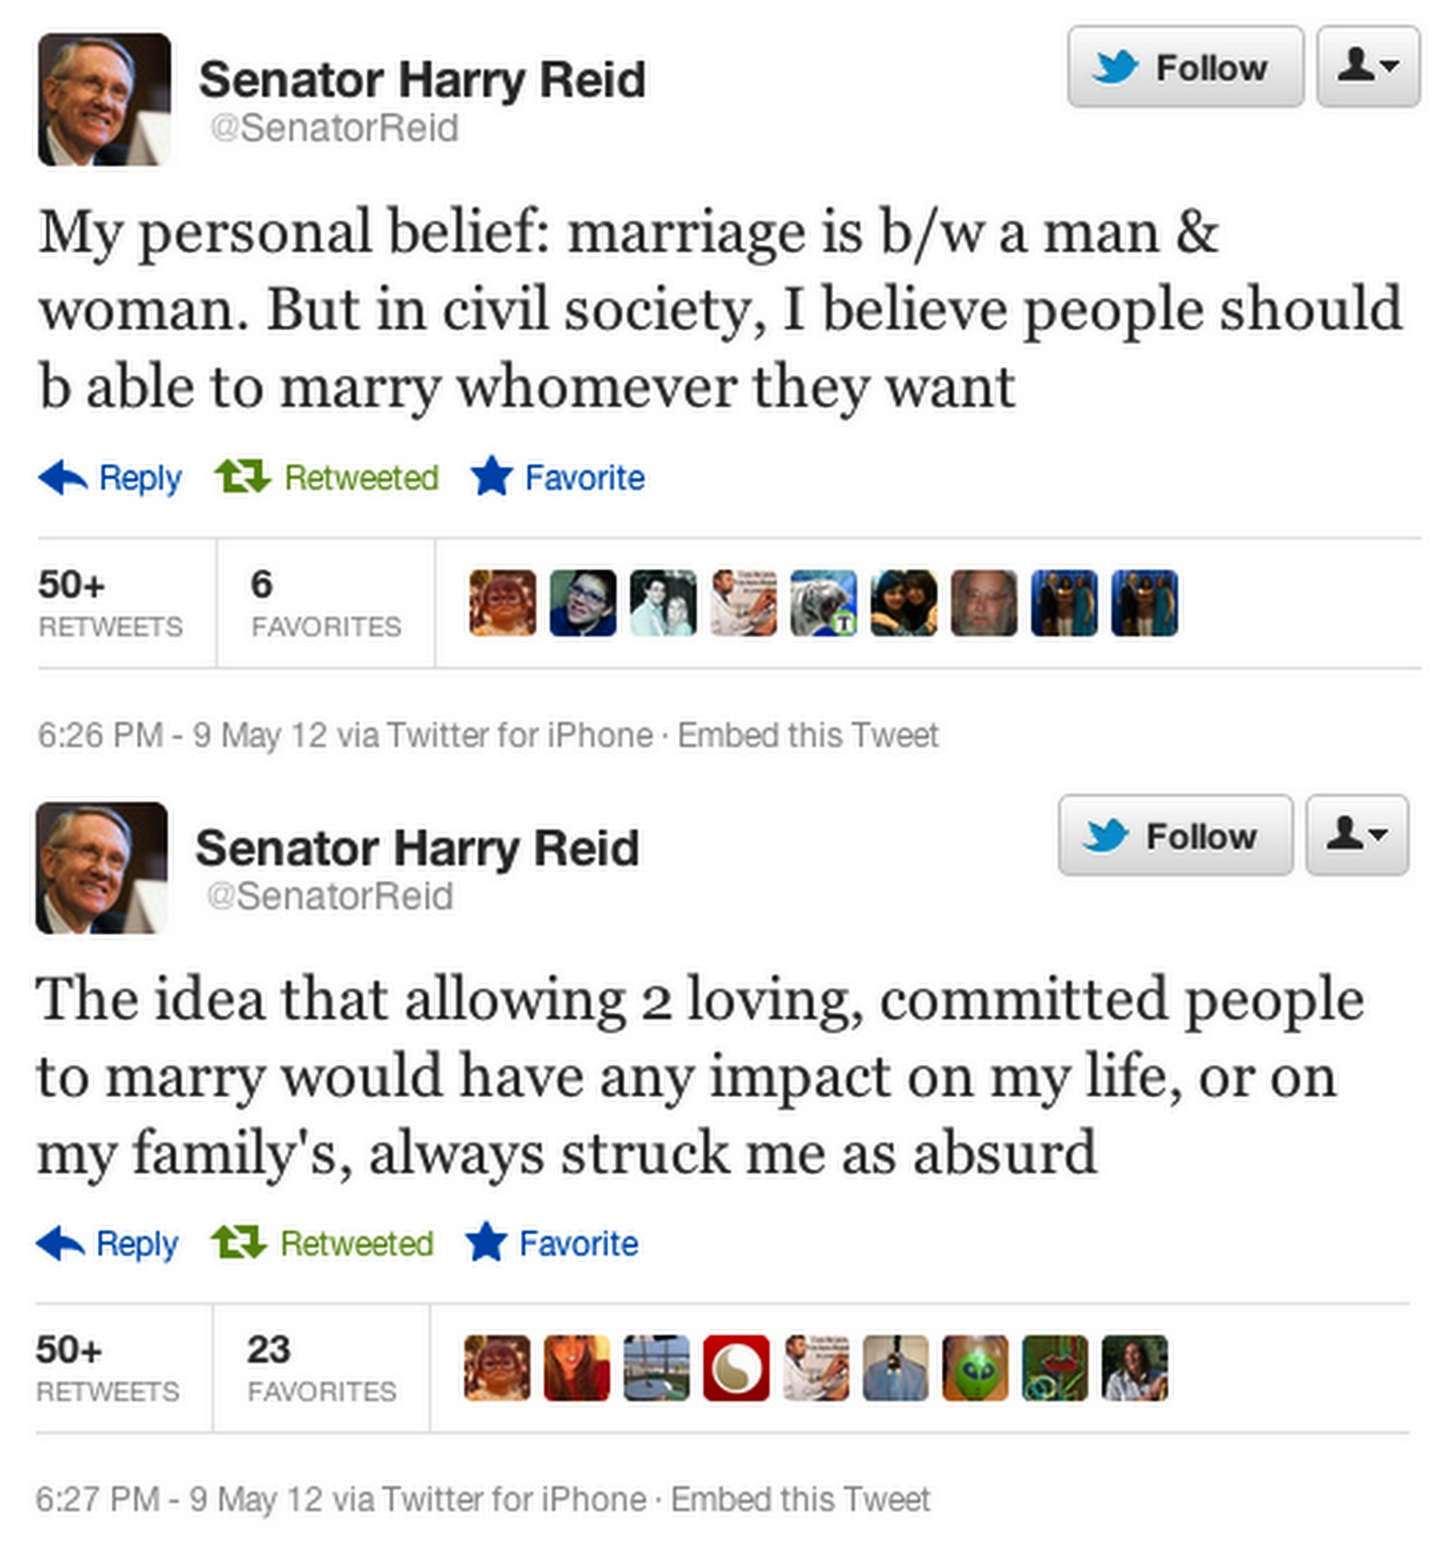 Harry Reid tweets Lets make it official